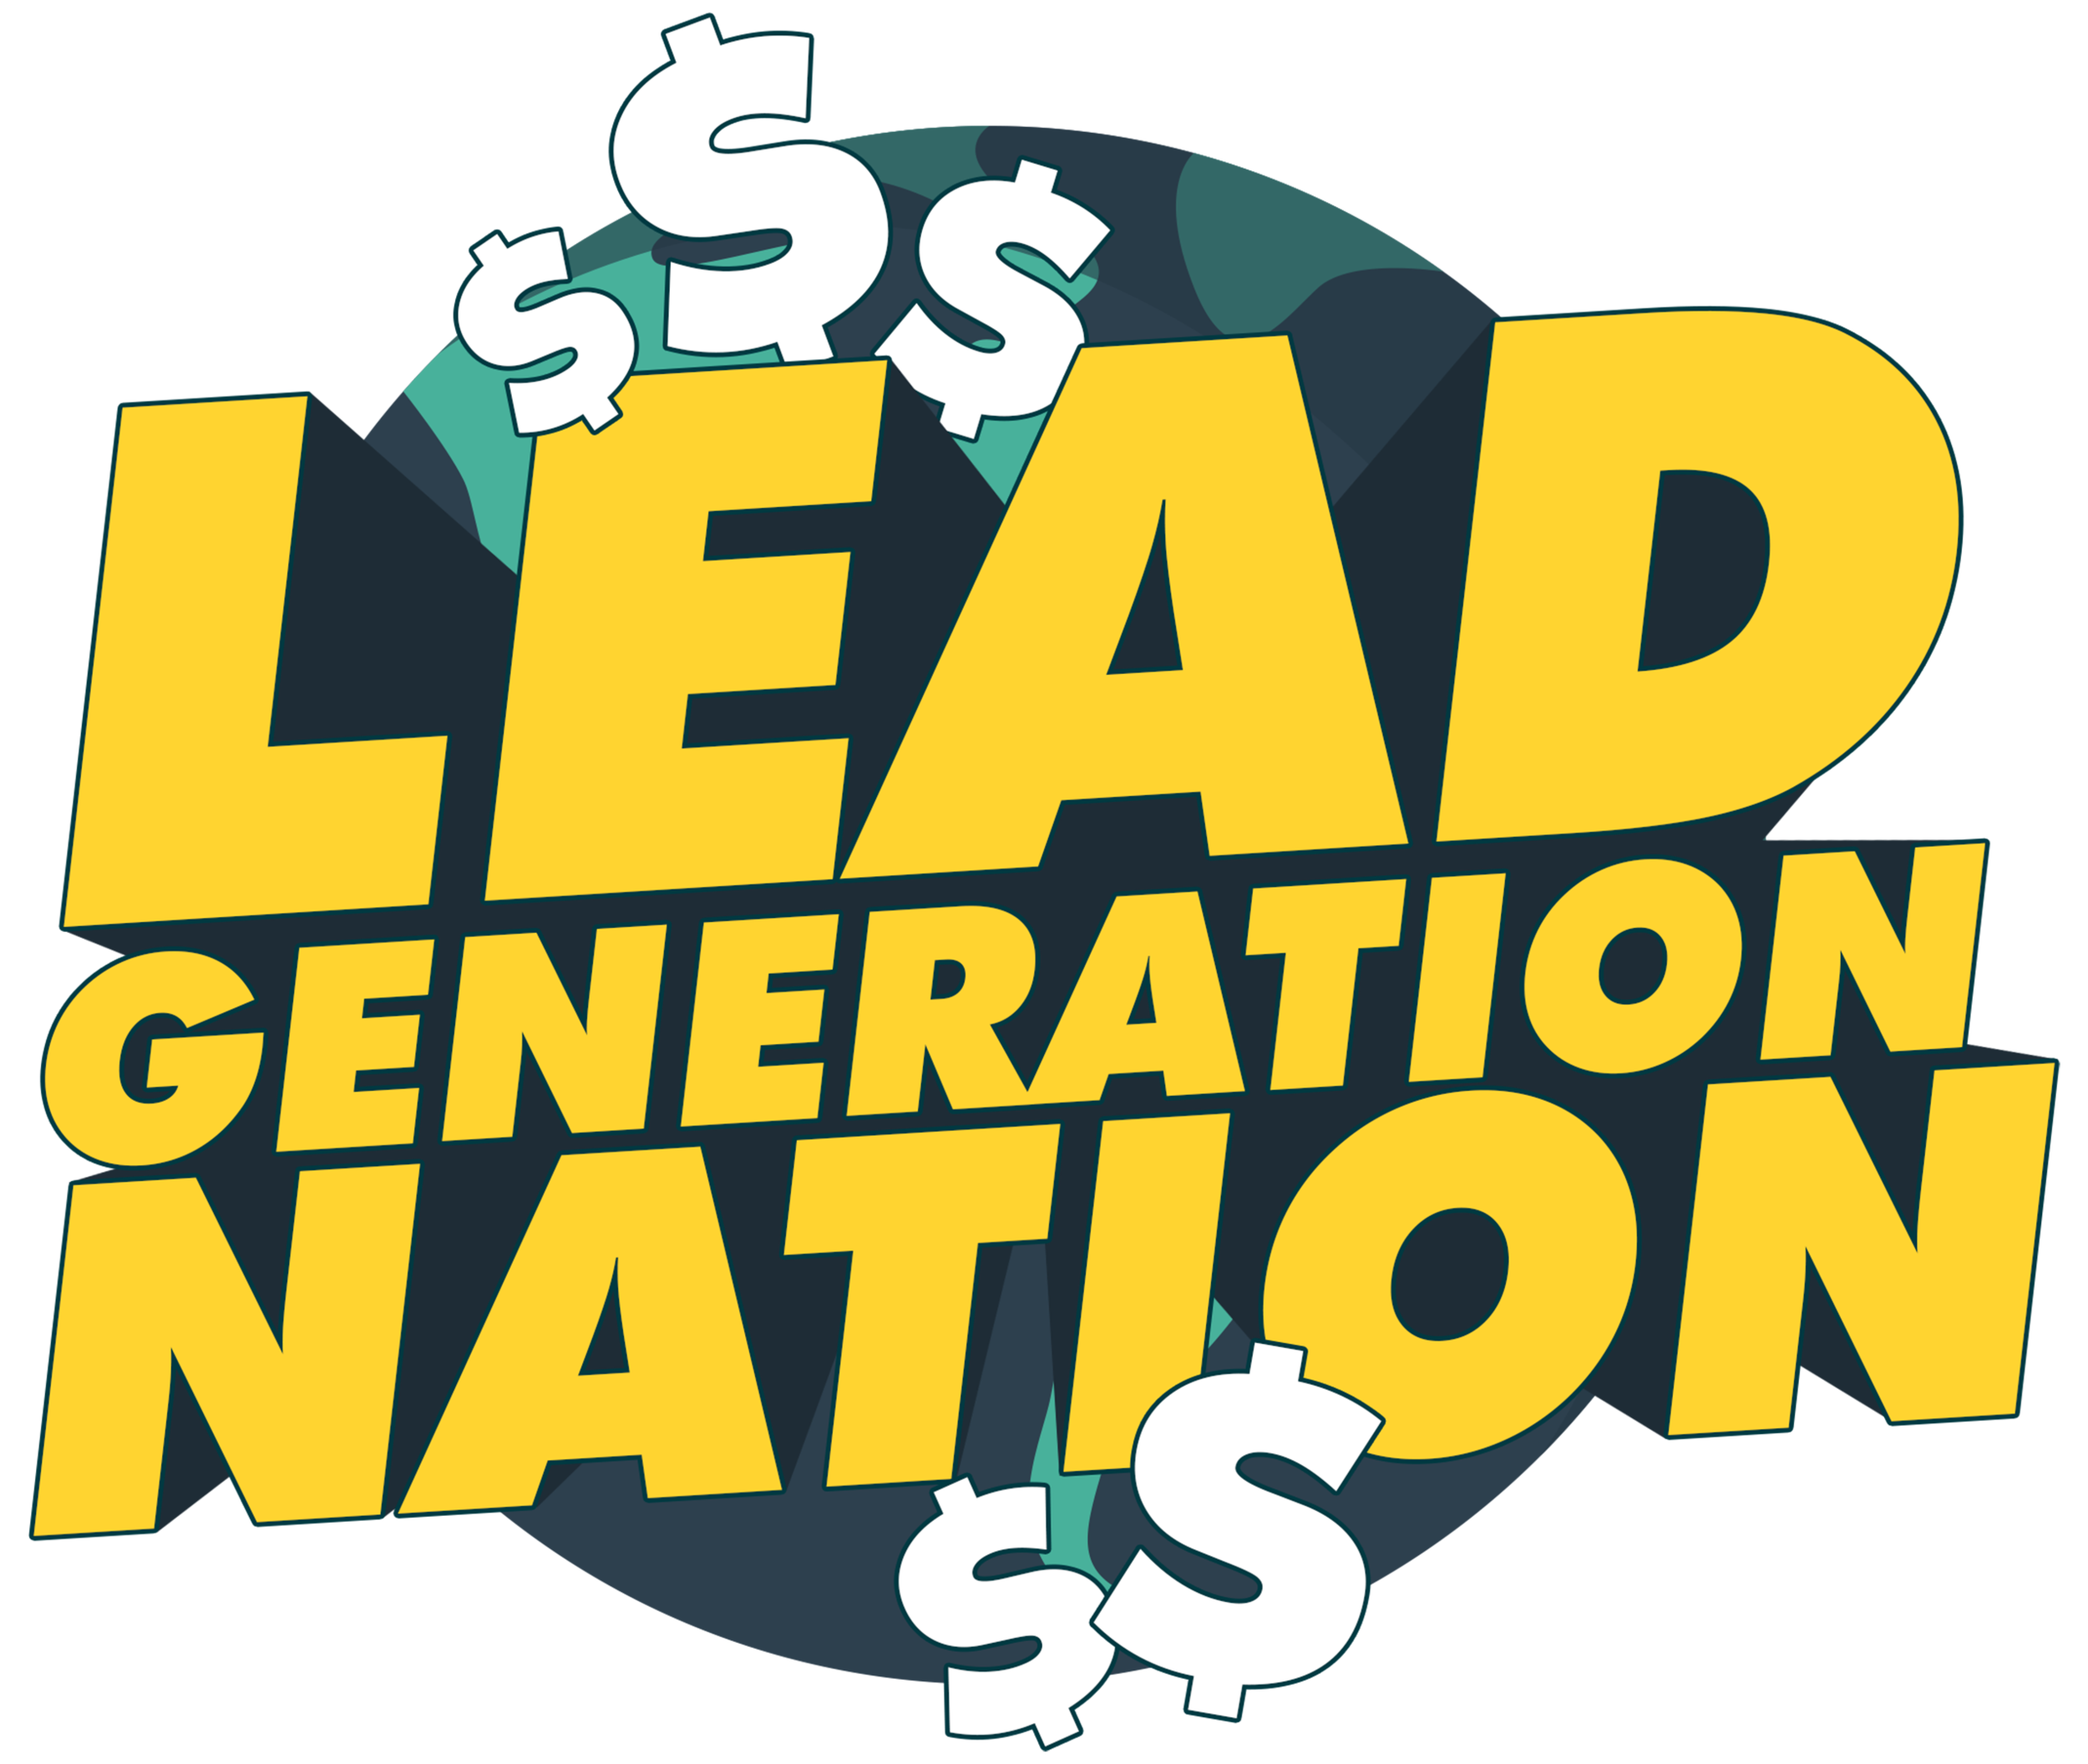 Lead Generation Nation Logo_2.png